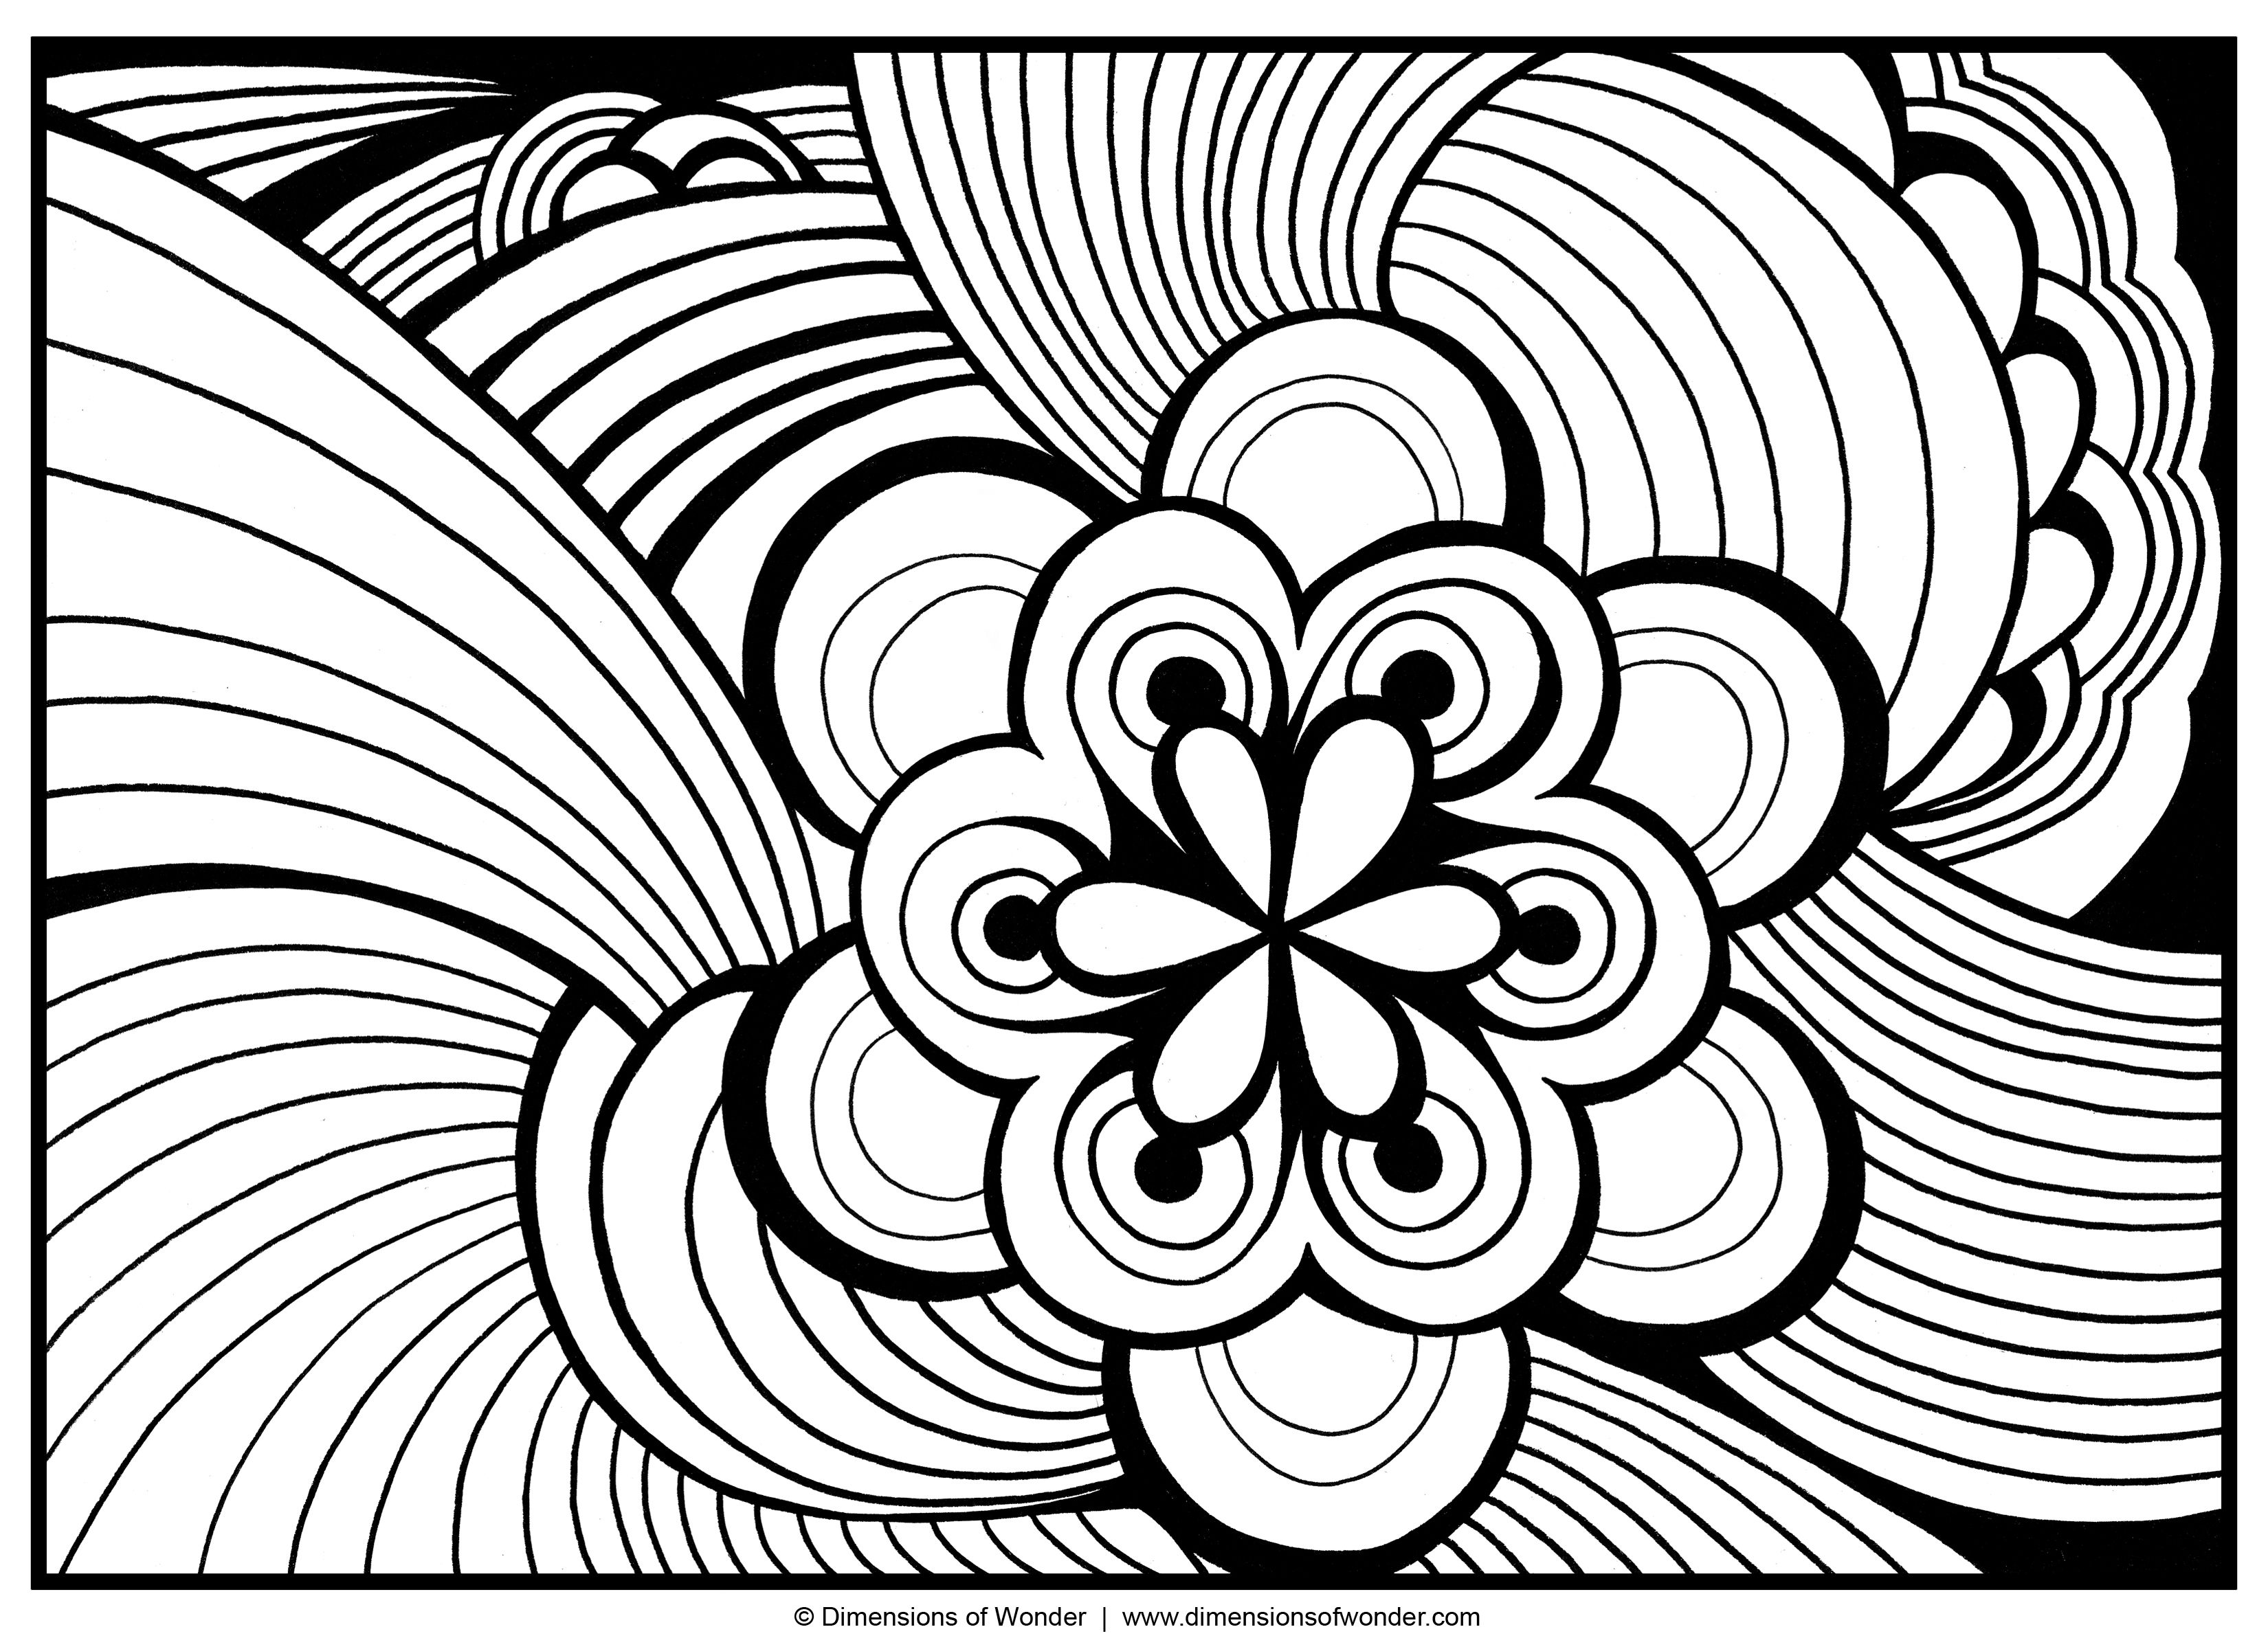 Free coloring pages adults printable - Abstract Coloring Pages Free Large Images